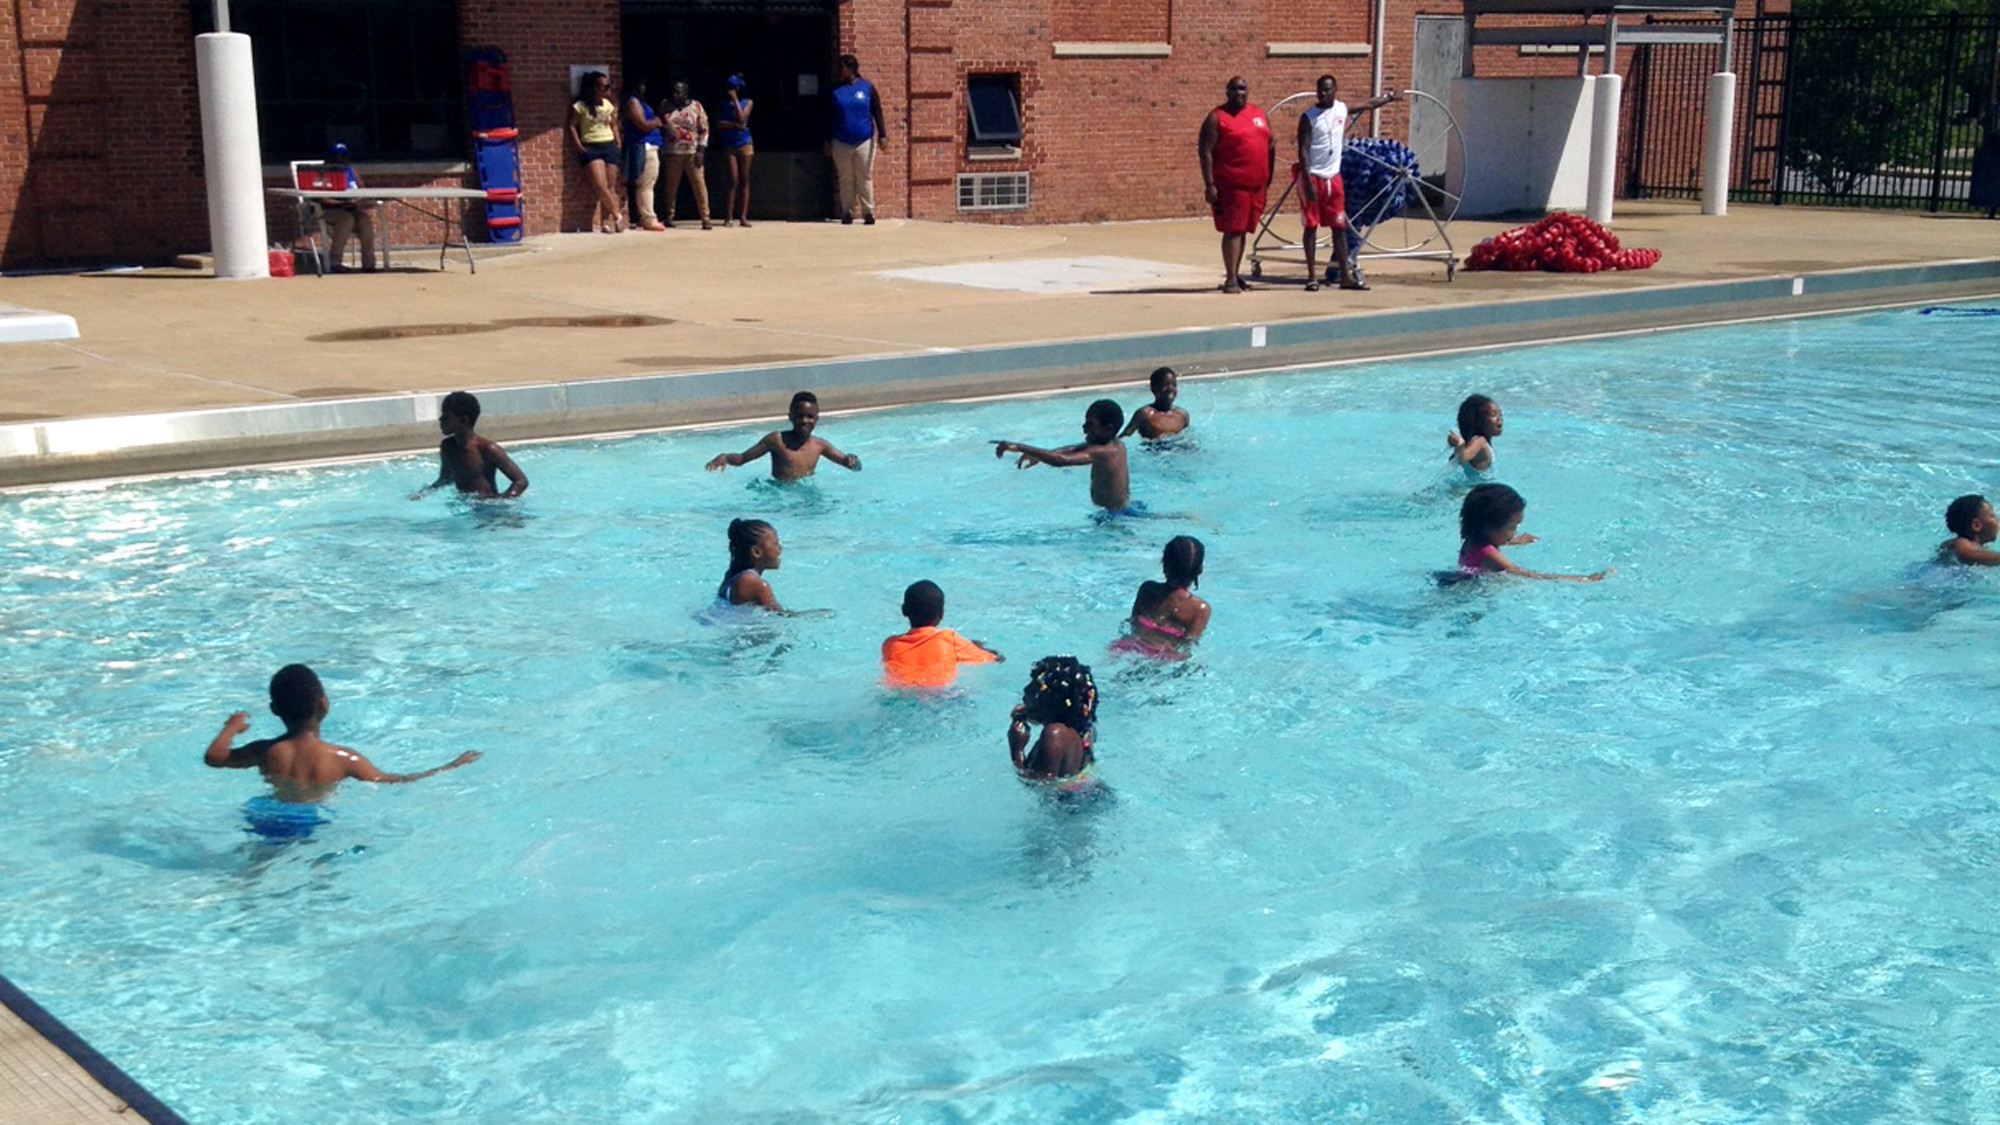 Pool season begins with big splash at cherry hill pool for Pool show lyon